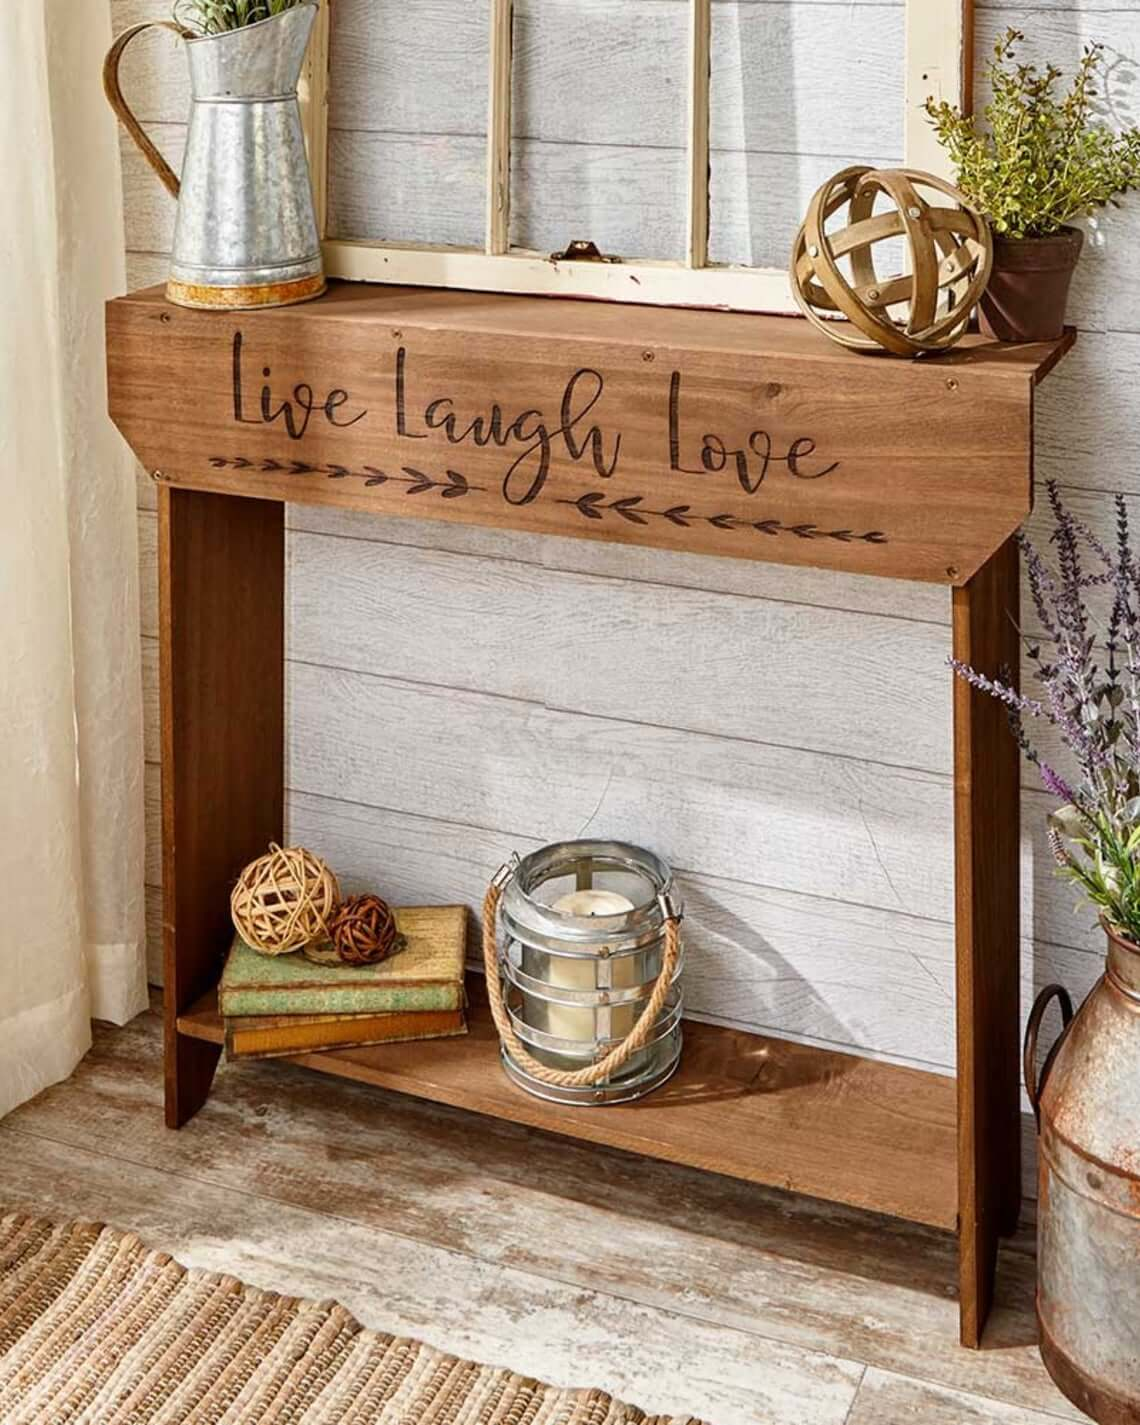 Sentimental Wooden Table with Lettering